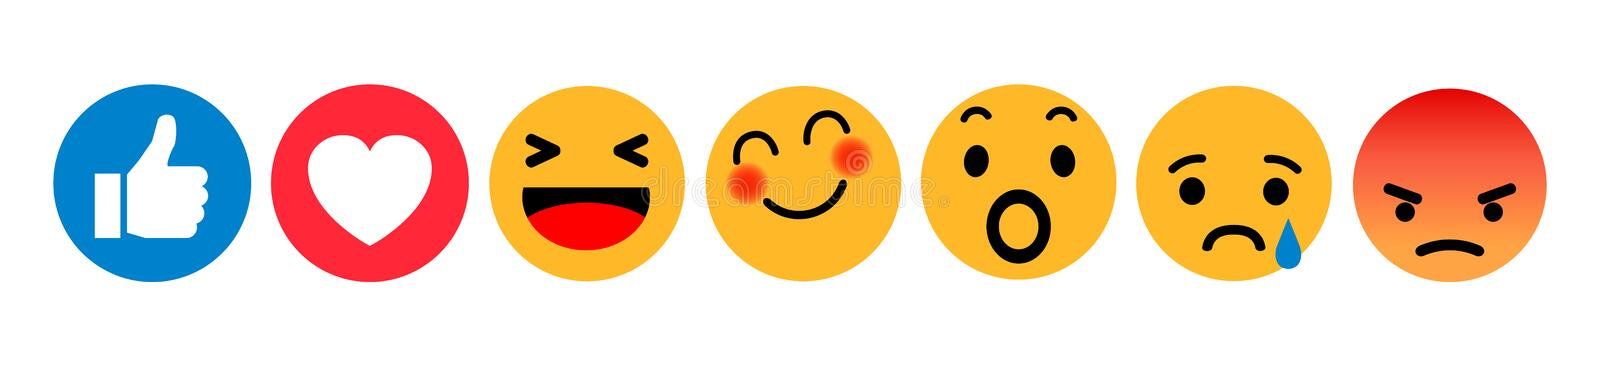 Set of Emoticons. Emoji social network reactions icon. Yellow smilies, set smiley emotion, by smilies, cartoon emoticons stock illustration